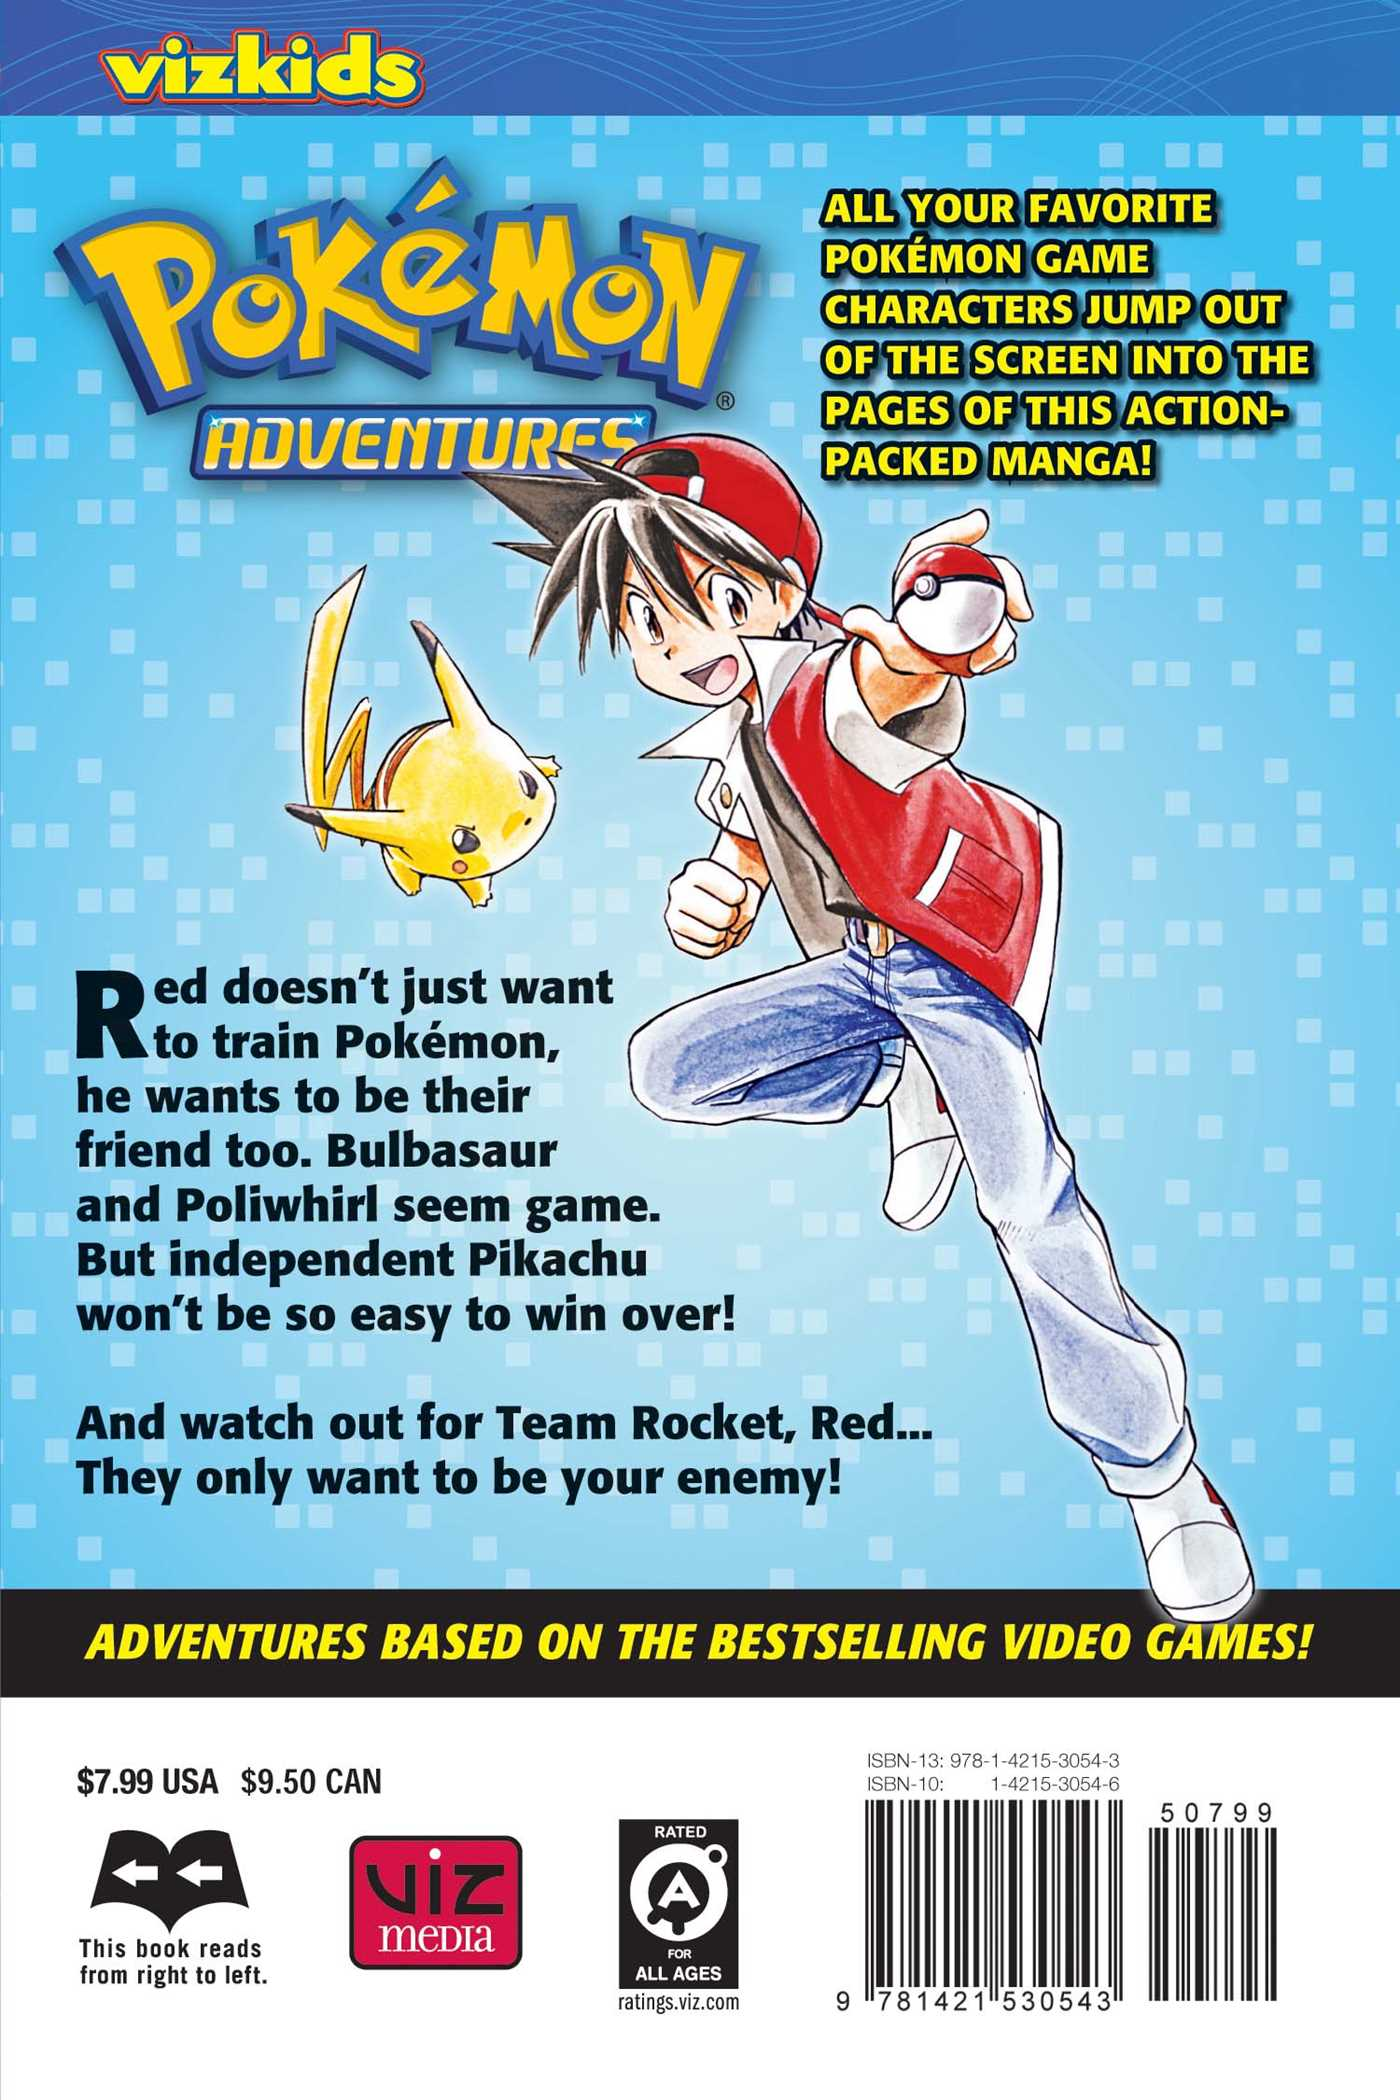 Pokemon adventures vol 1 2nd edition 9781421530543 hr back